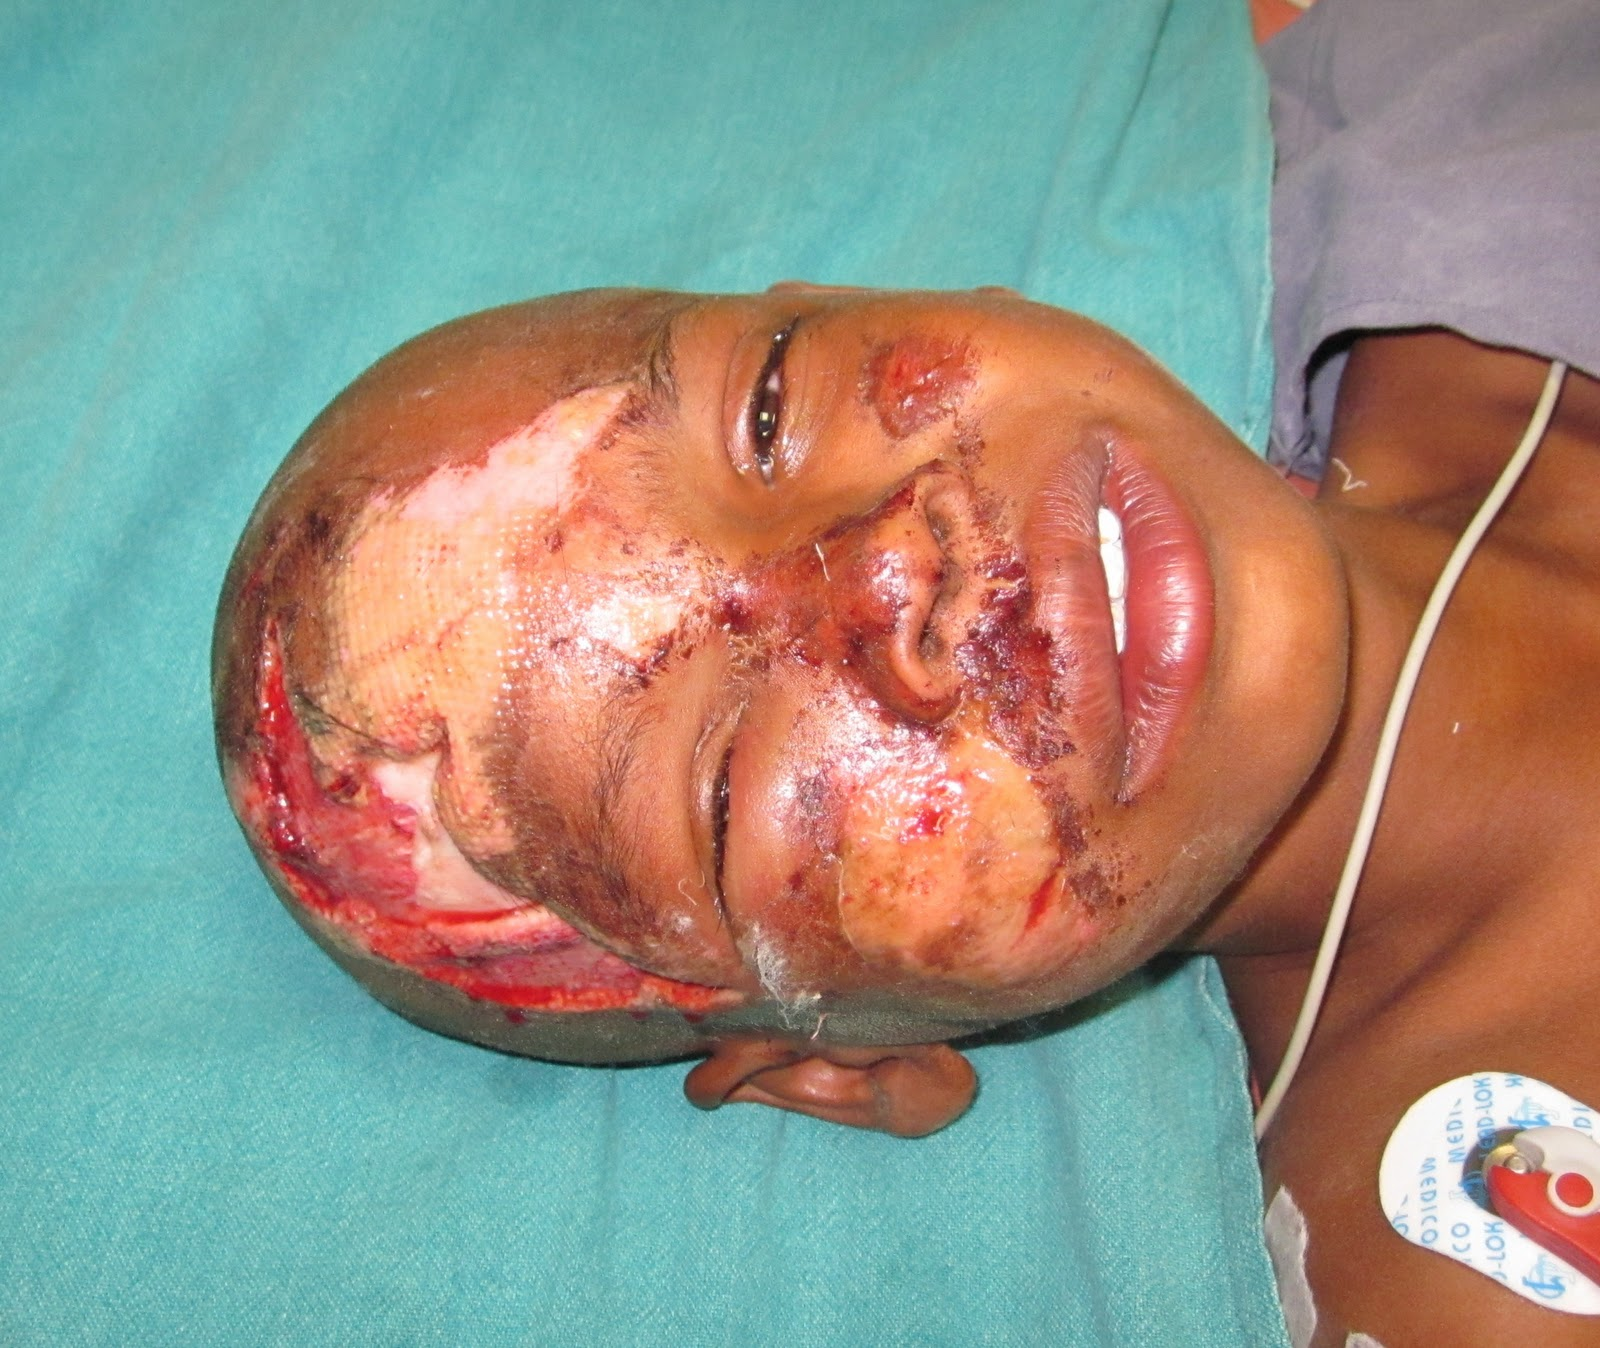 Definition compulsion facial fracture causing loss of smell provide support